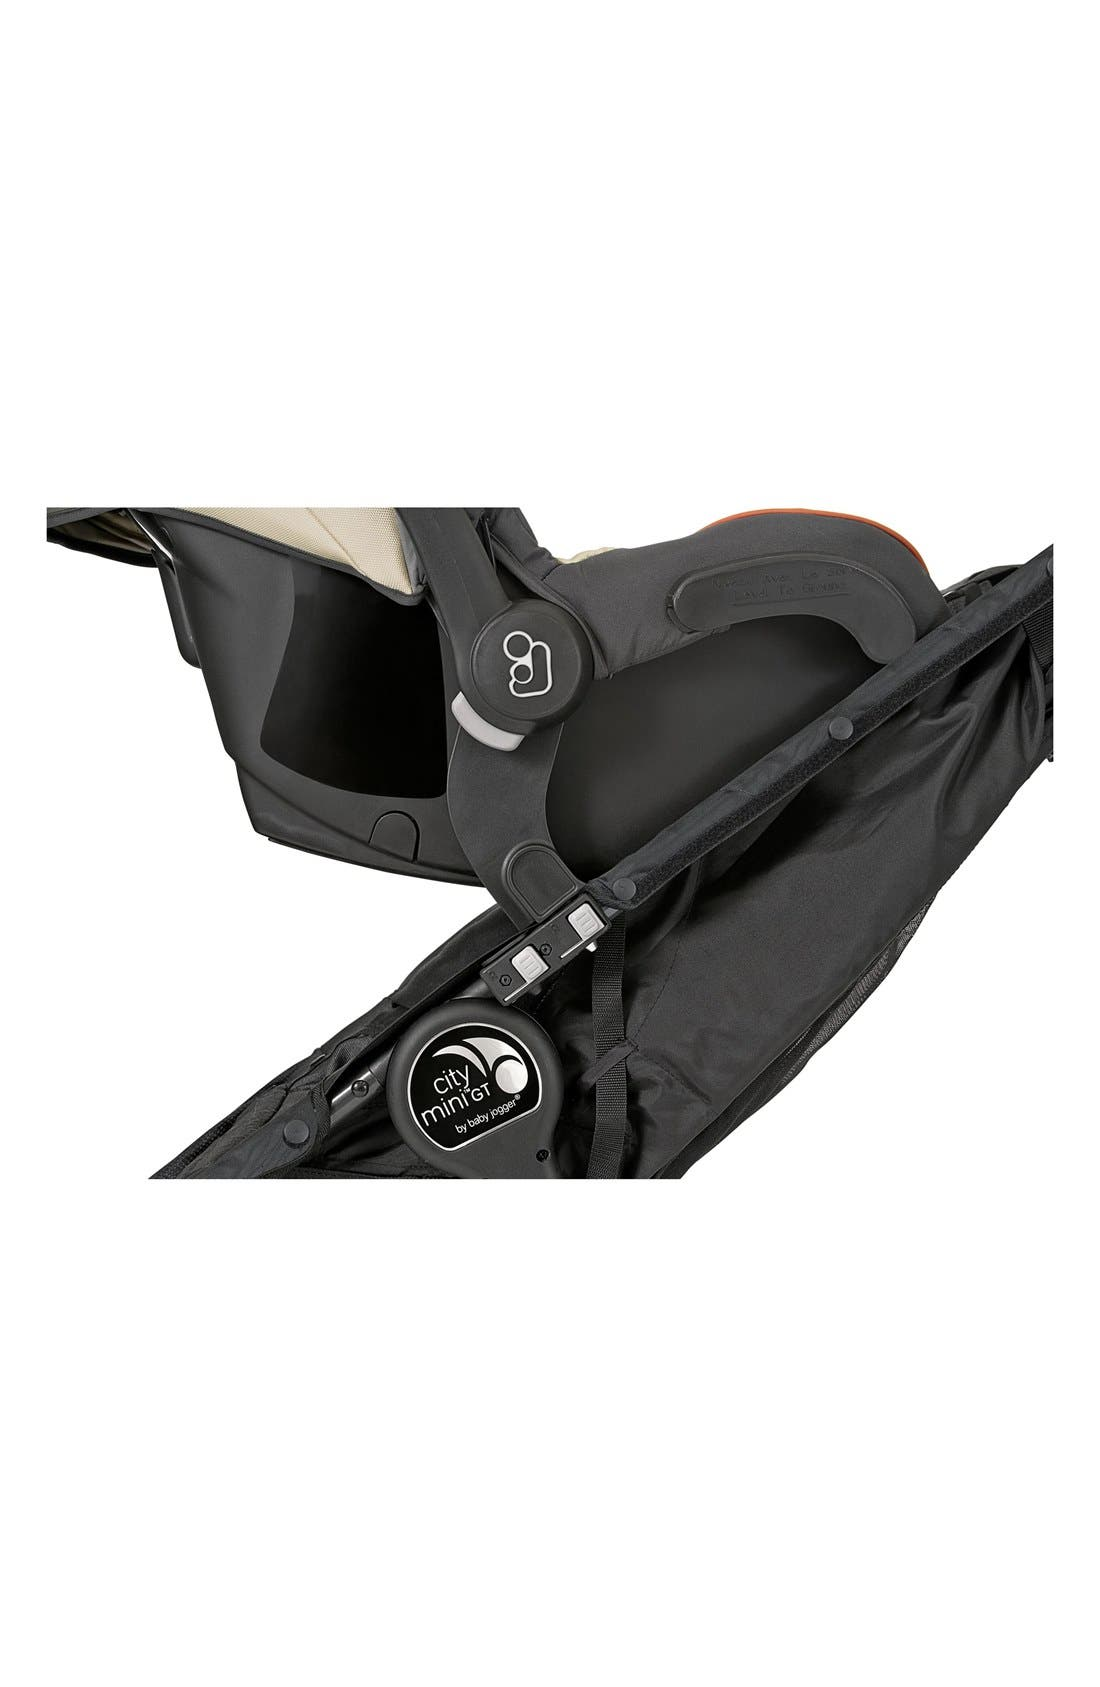 City Mini<sup>®</sup> Double/City Mini<sup>®</sup> GT Double Stroller to Cybex & Maxi-Cosi<sup>®</sup> Car Seat Adapter,                         Main,                         color, BLACK